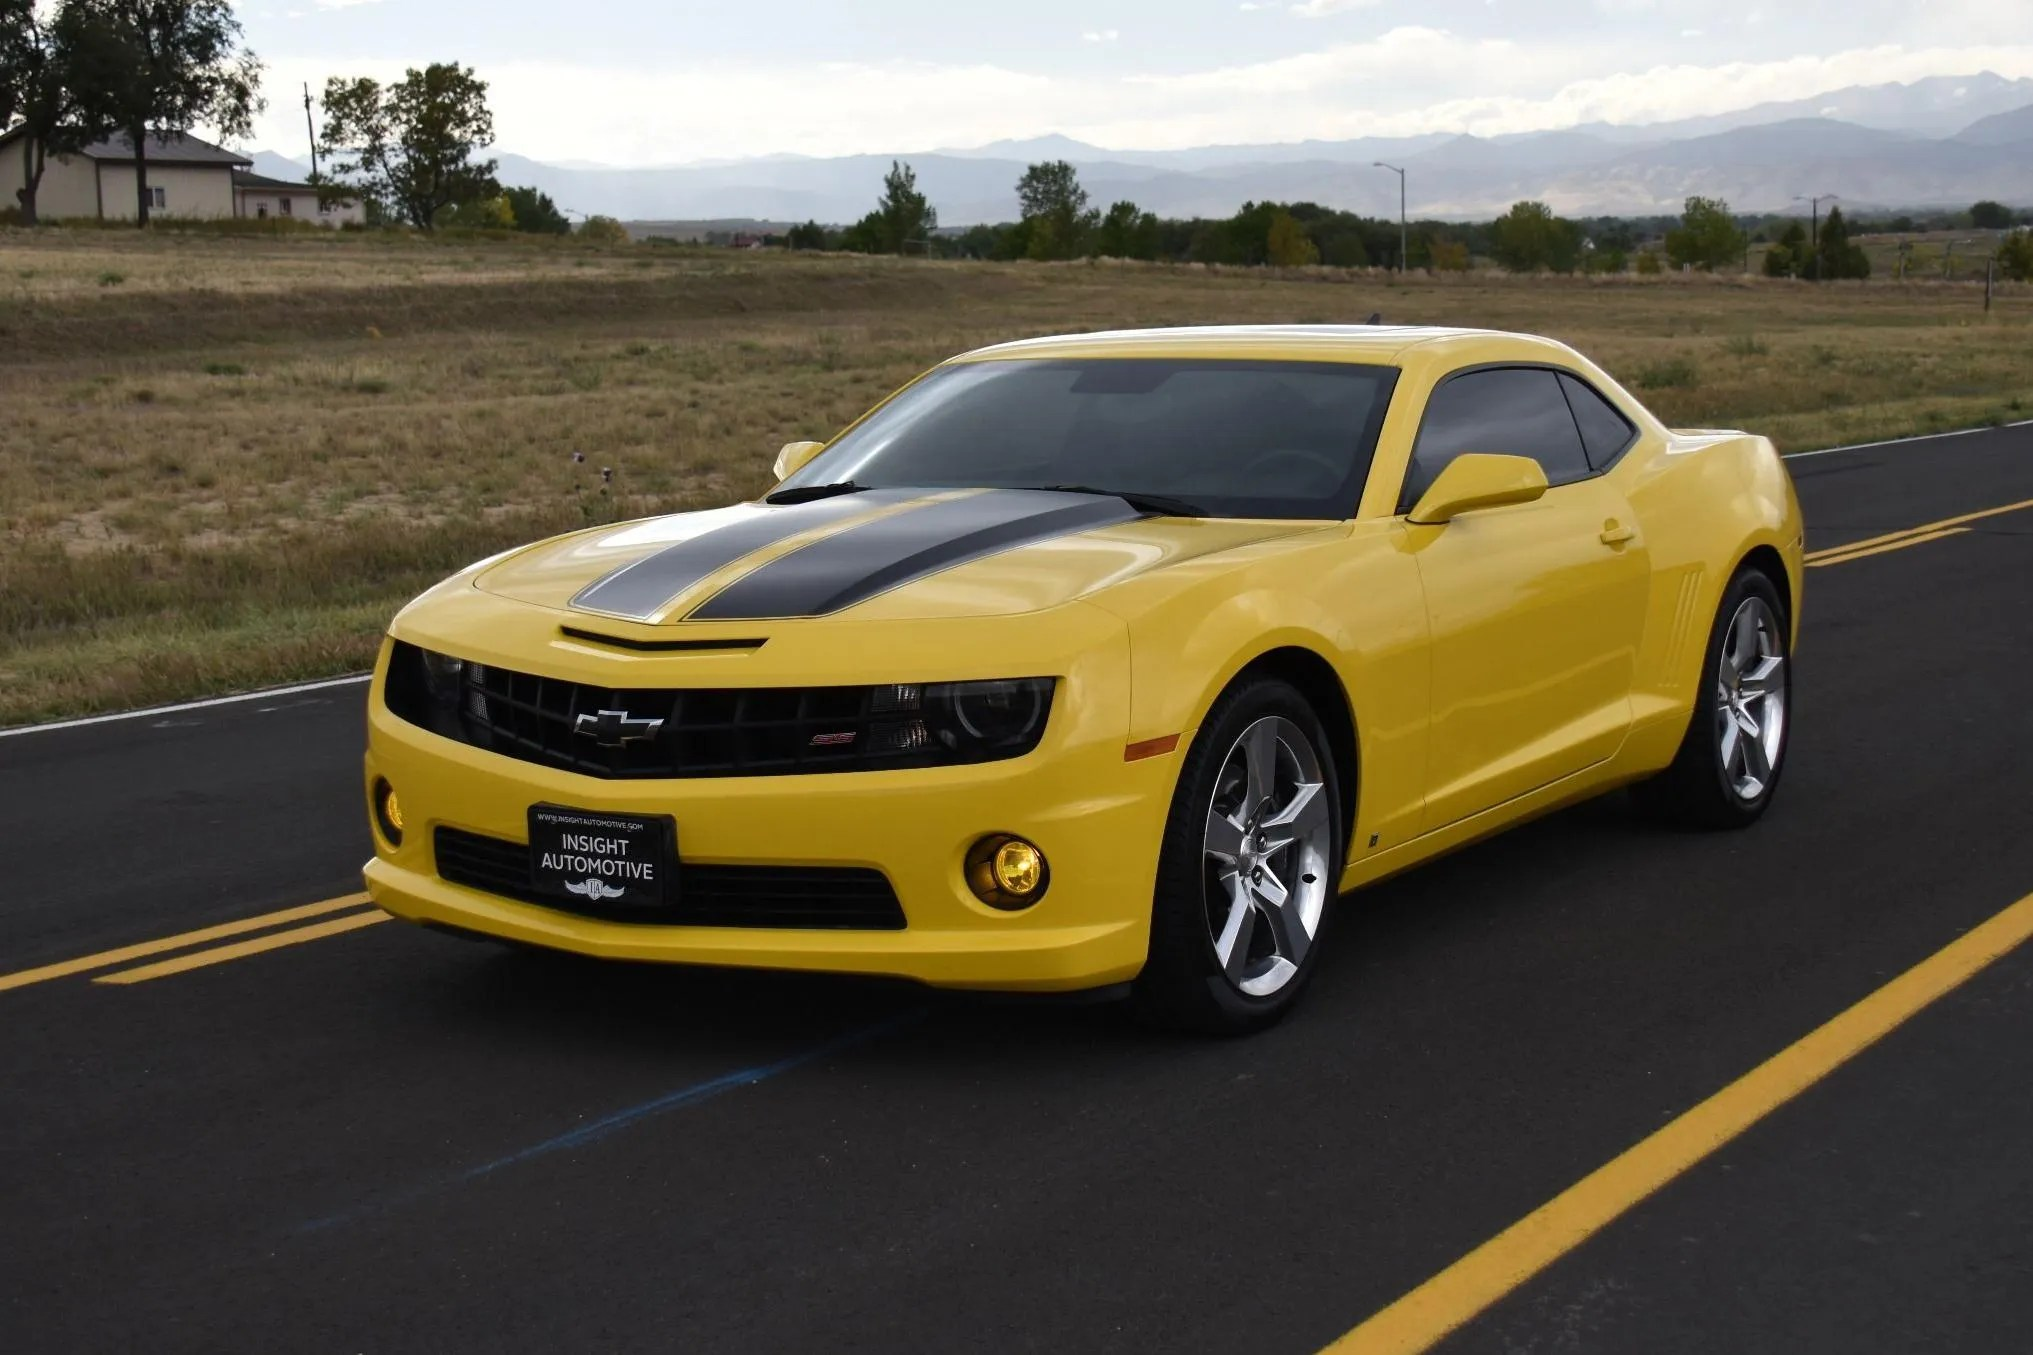 2010 chevrolet camaro 2ss rs v8 426 hp 6 speed manual low low miles heated leather roof [ 2033 x 1355 Pixel ]